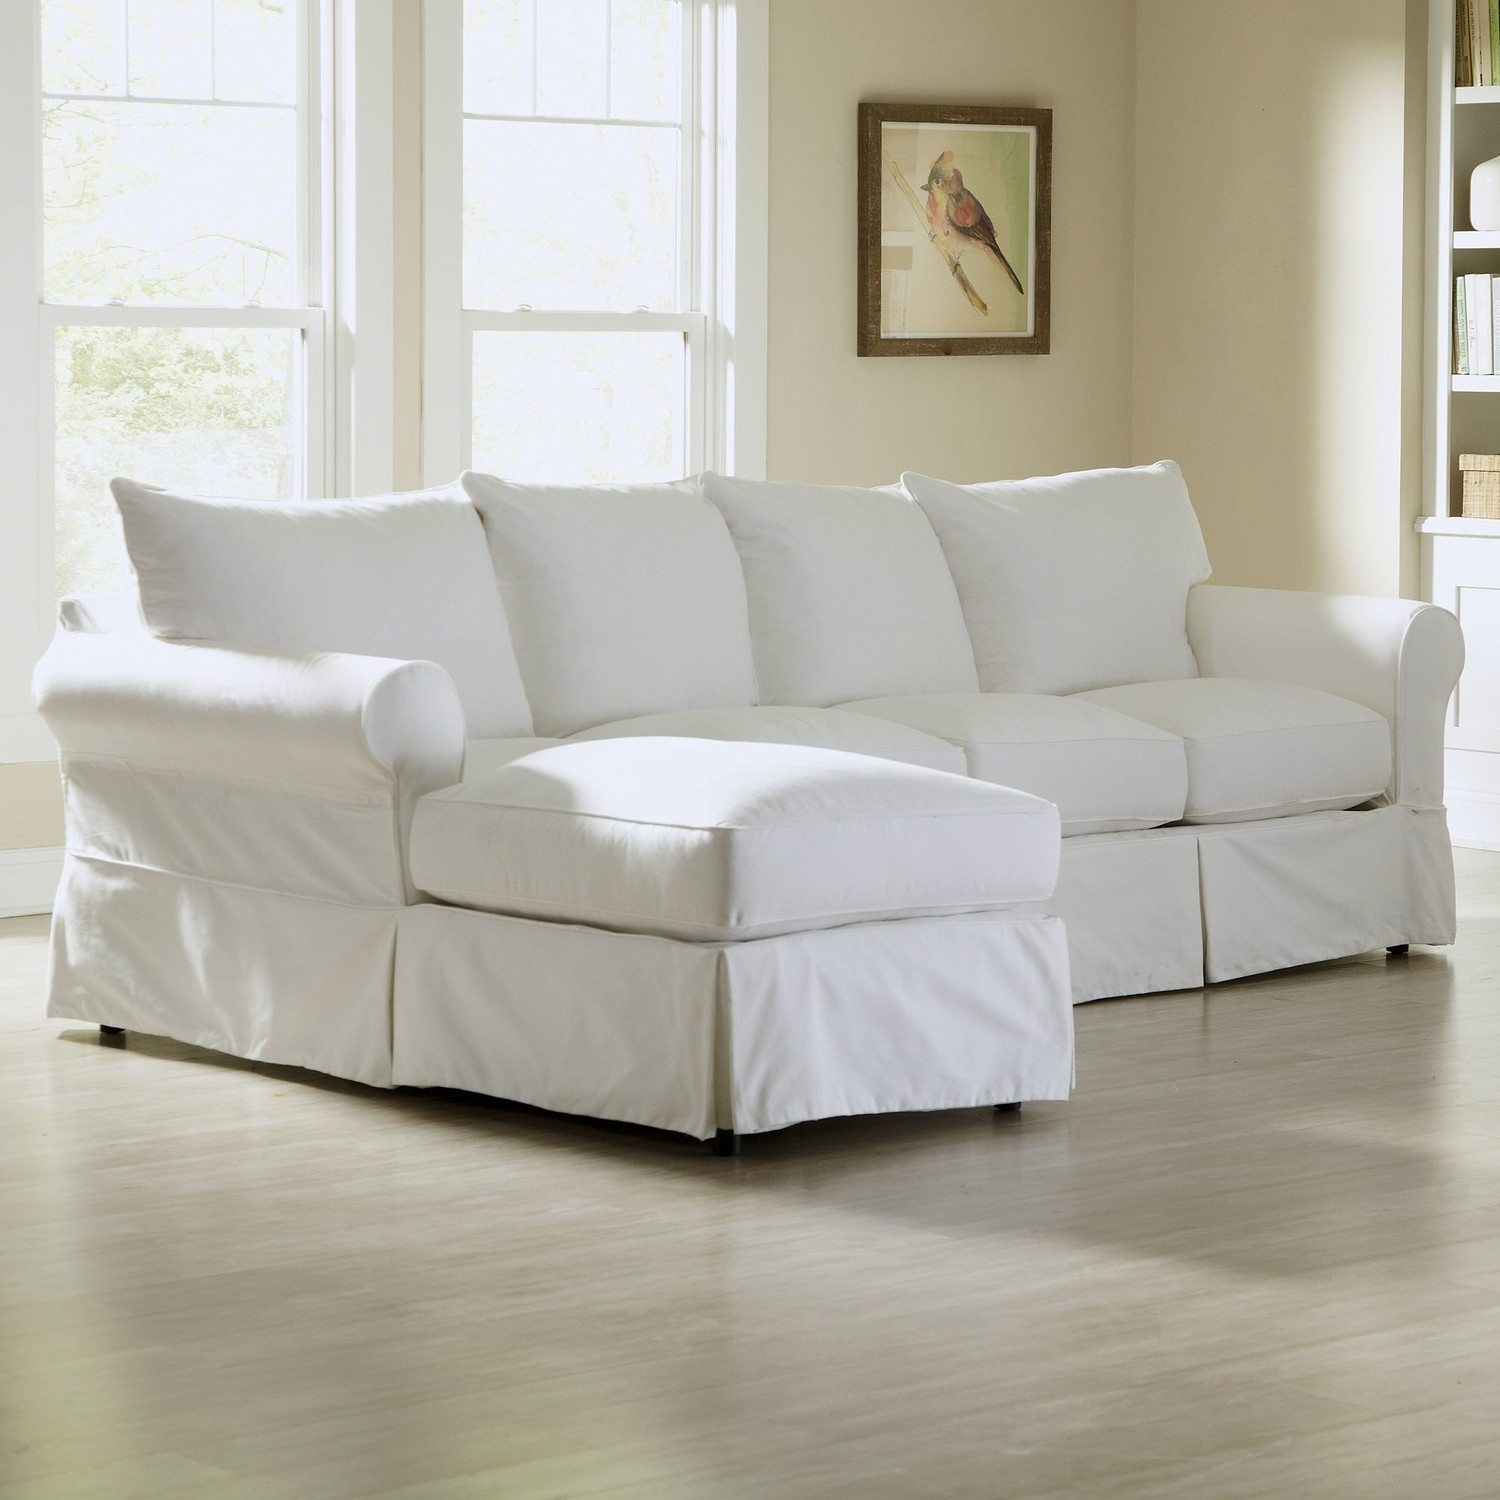 Sectional Sofa Design: Down Sectional Sofa Blend Wrapped Goose Pertaining To Down Filled Sofas (View 8 of 10)